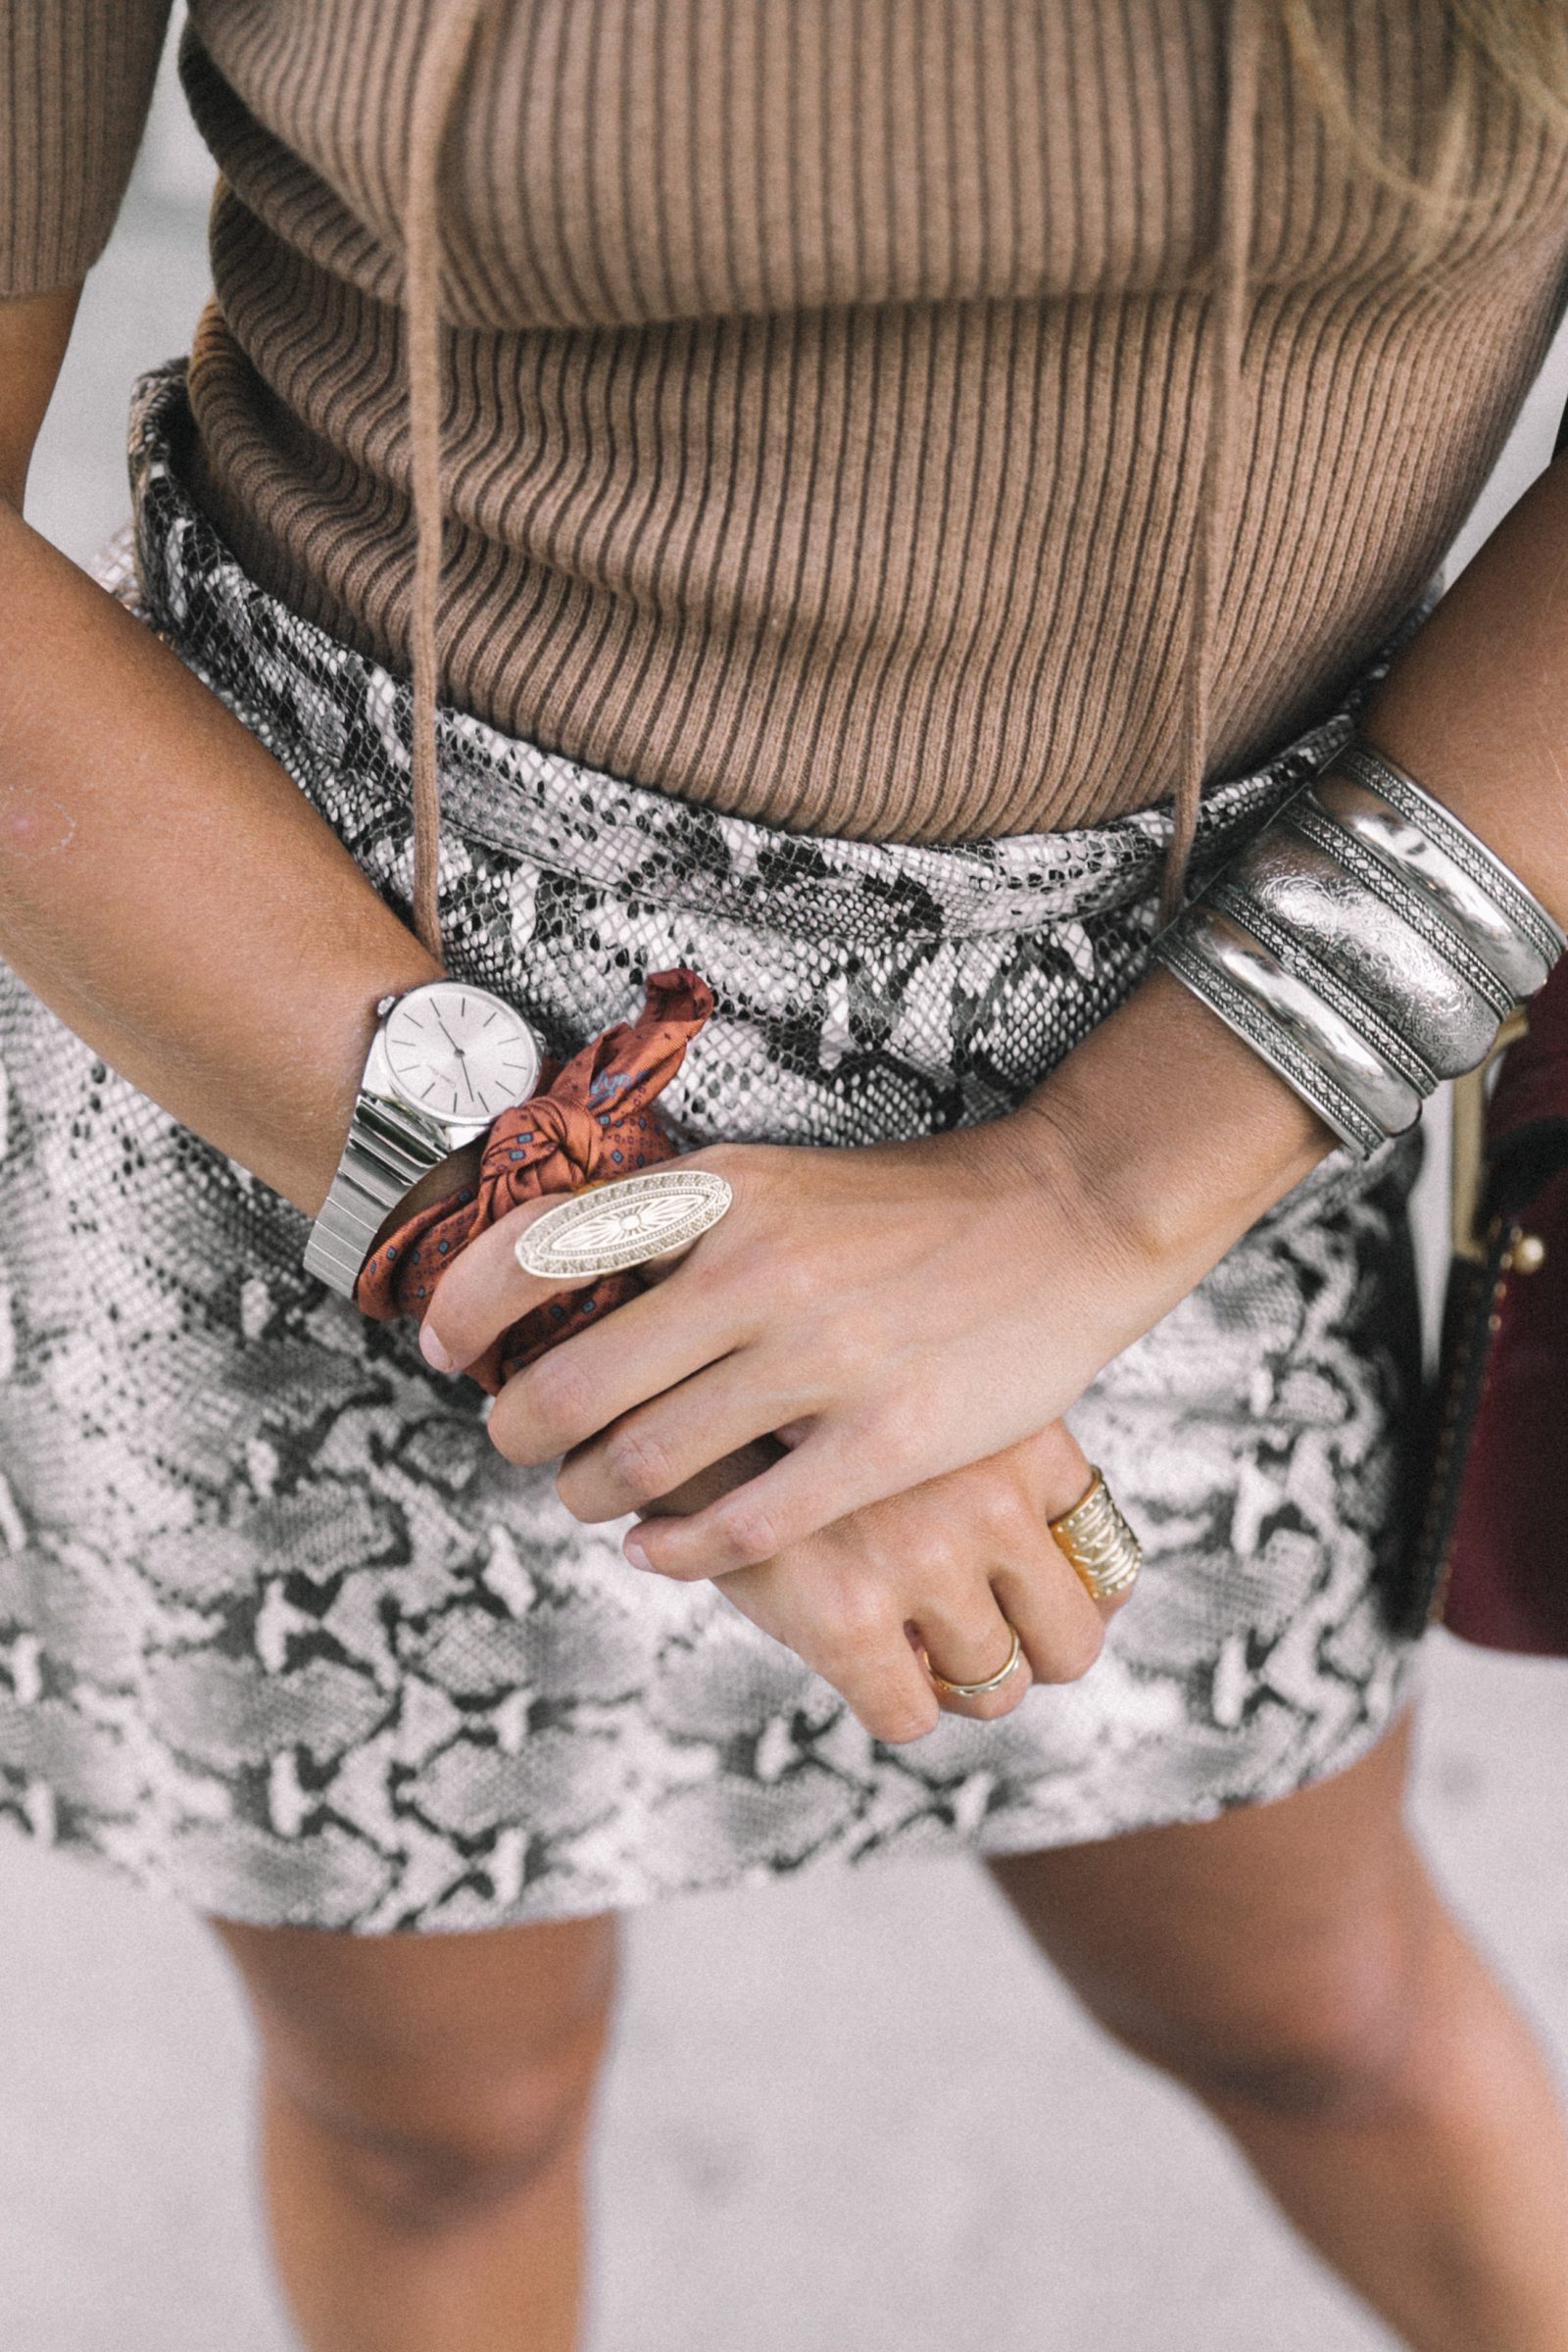 lpa_the_label-revolve_clothing-snake_skirt-lace_up_sweater-knotted_sandals-chloe_hudson_bag-outfit-street_style-los_angeles-89